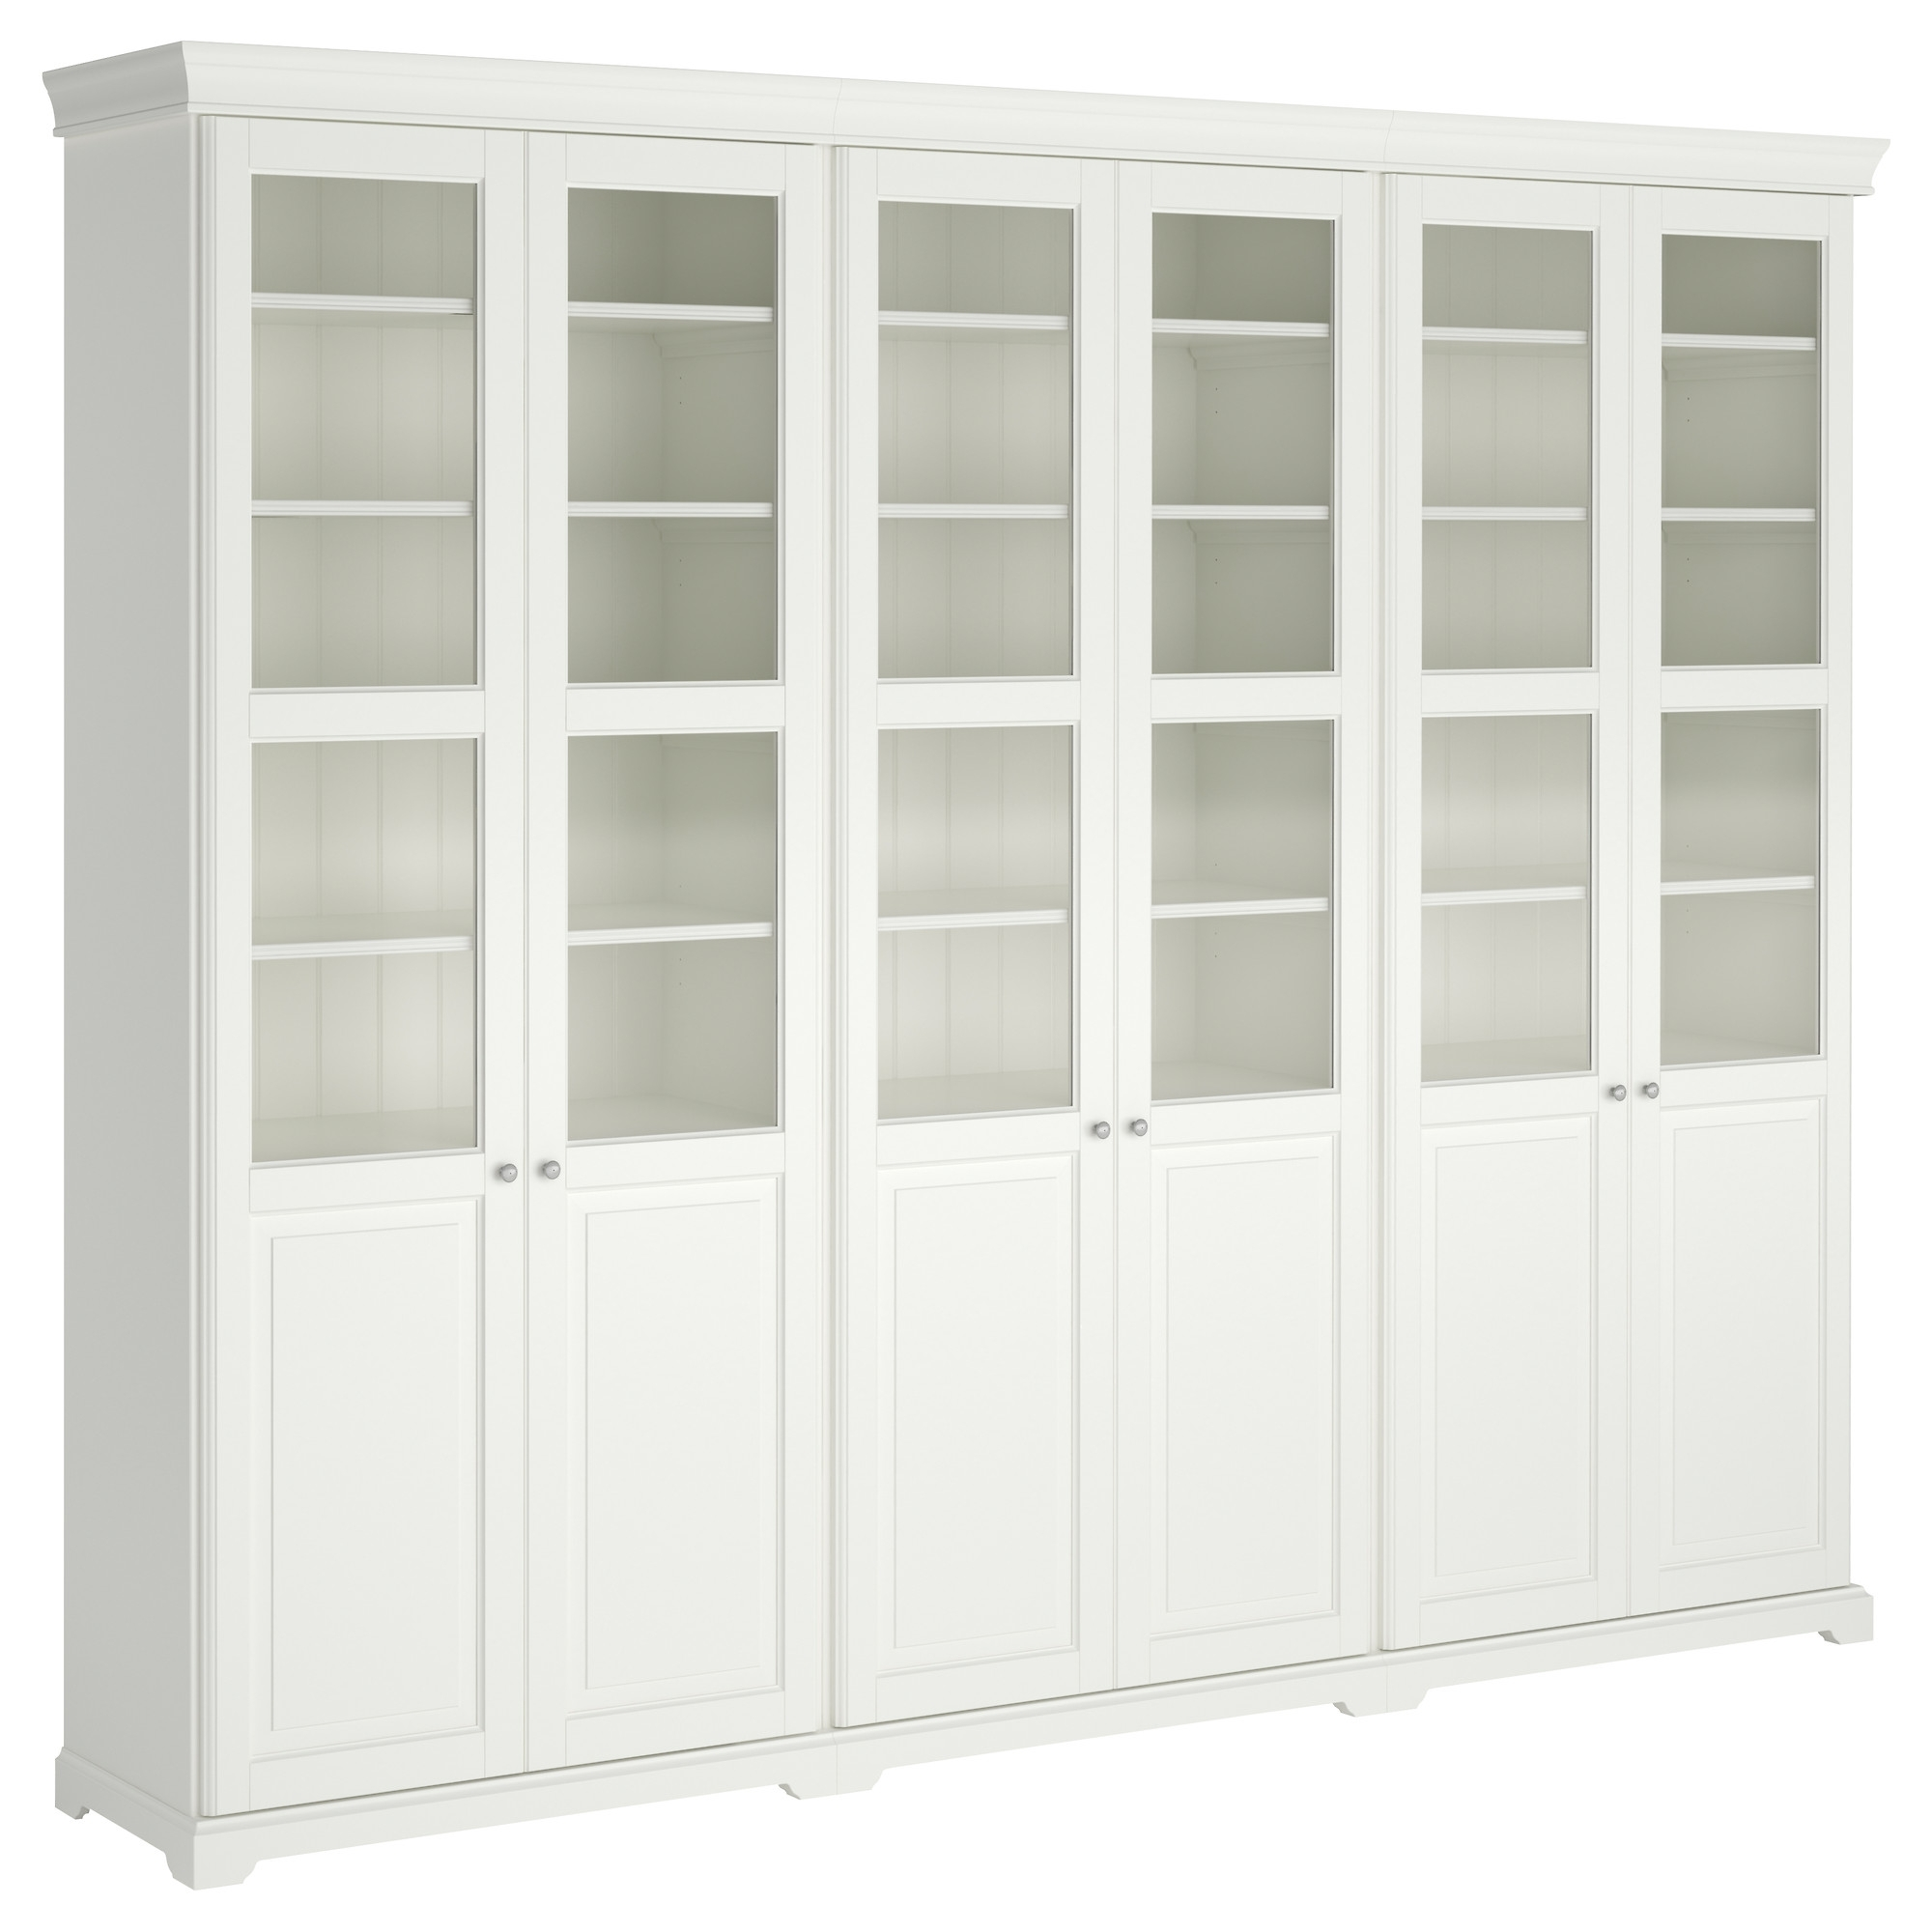 Liatorp Storage Combination With Doors – Ikea With Regard To Well Known Storage Bookcases (View 5 of 15)